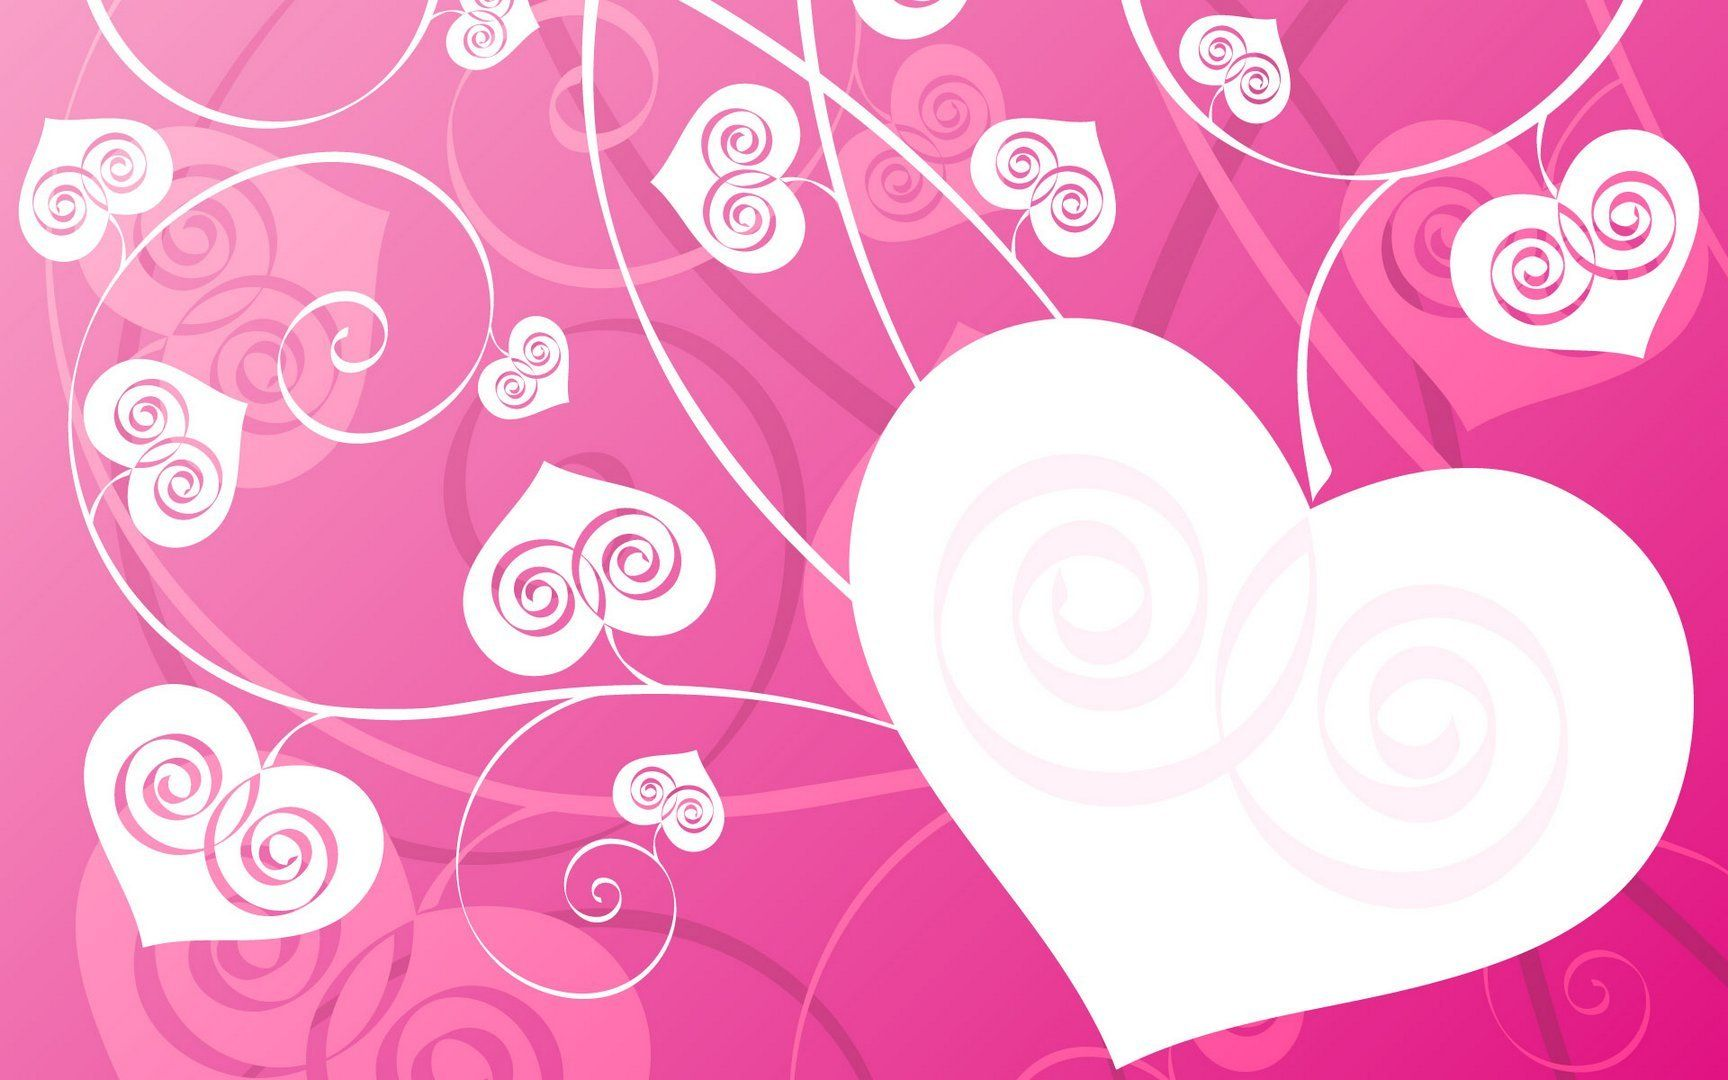 Girly Love Wallpaper : Girly Desktop Backgrounds Girly Pink Hearts wallpaper Love Pinterest Desktop backgrounds ...